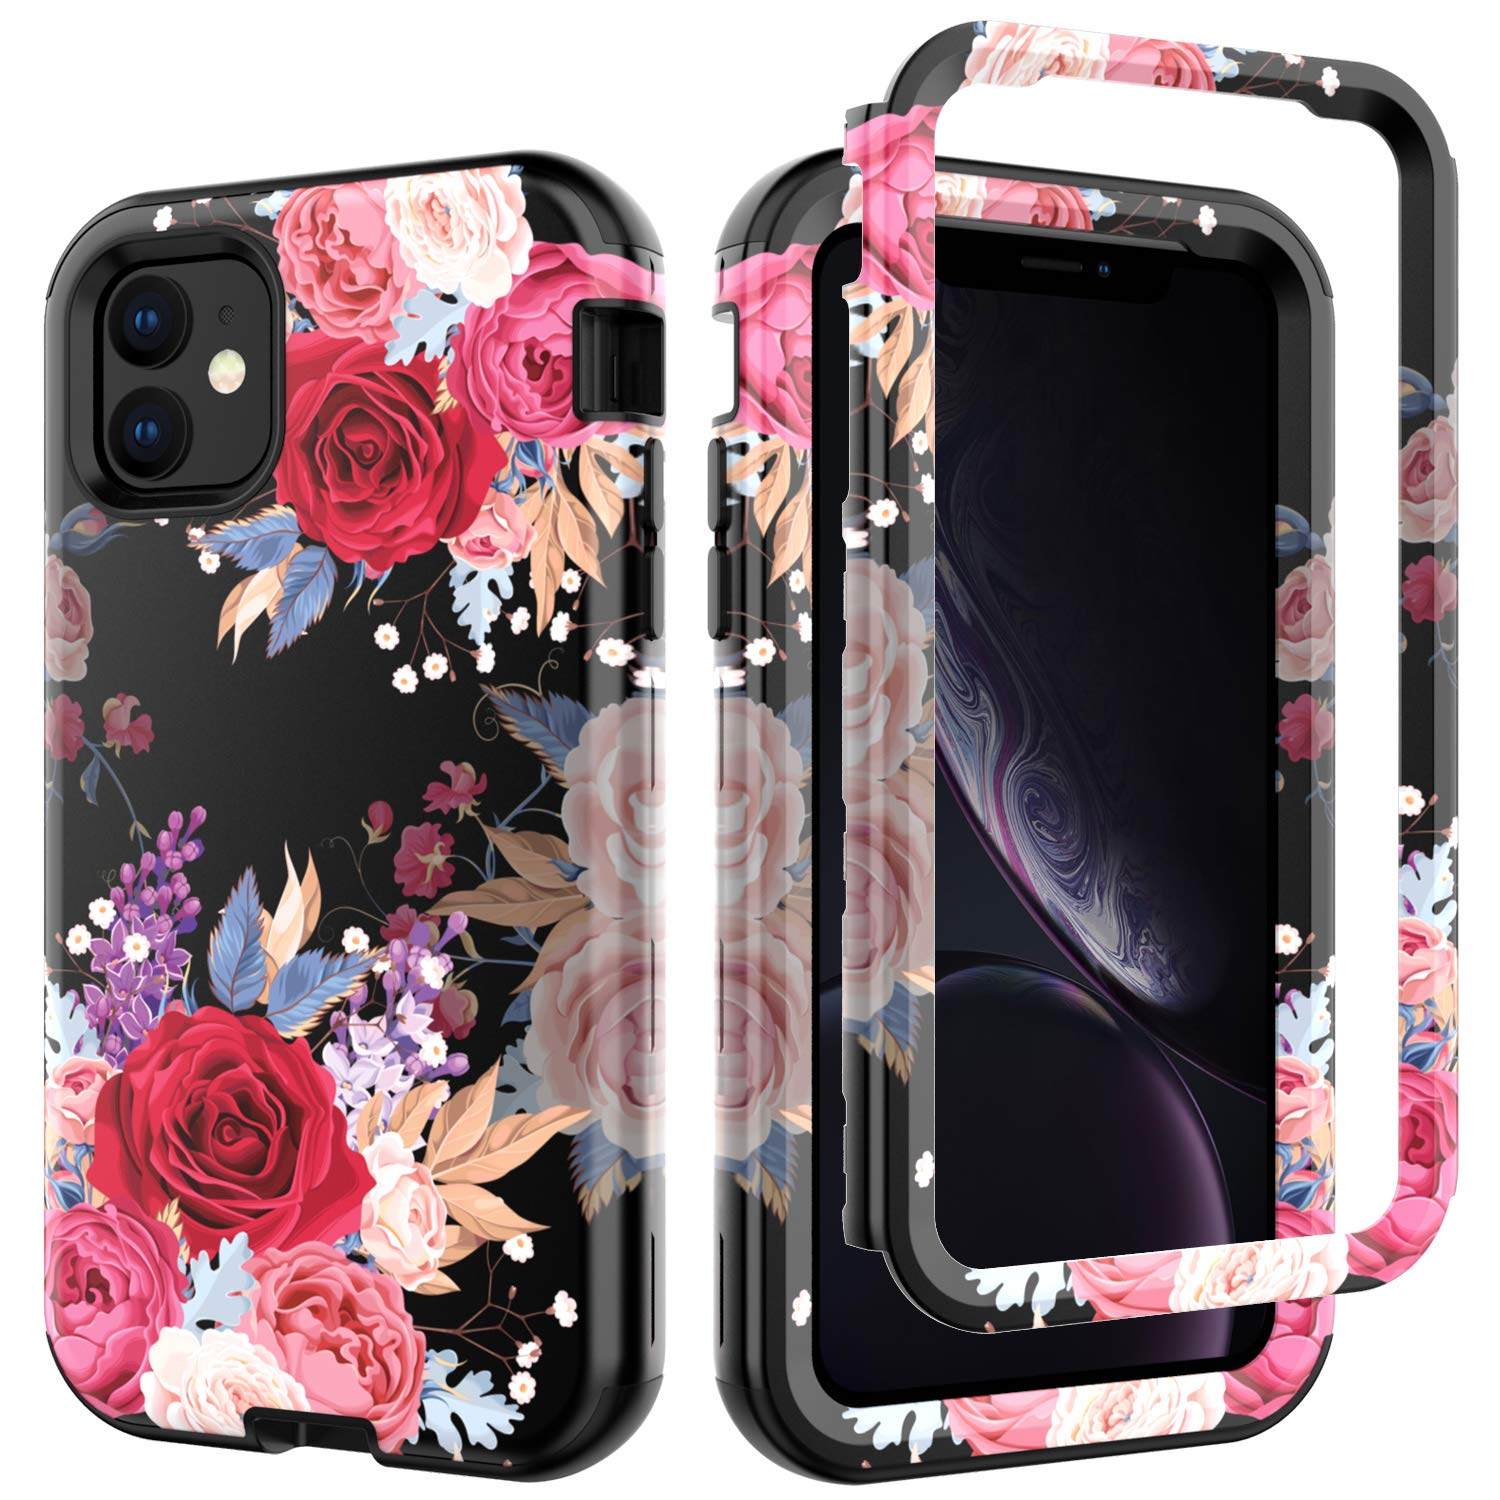 iPhone 11 Case, Ranyi Luxury Floral Flower Pattern Full Body Protection 3 in 1 Hybrid Bumper Shock Absorbing High Impact Heavy Duty Defender Case Cover for Apple 2019 6.1 Inch iPhone 11 (red) by Ranyi